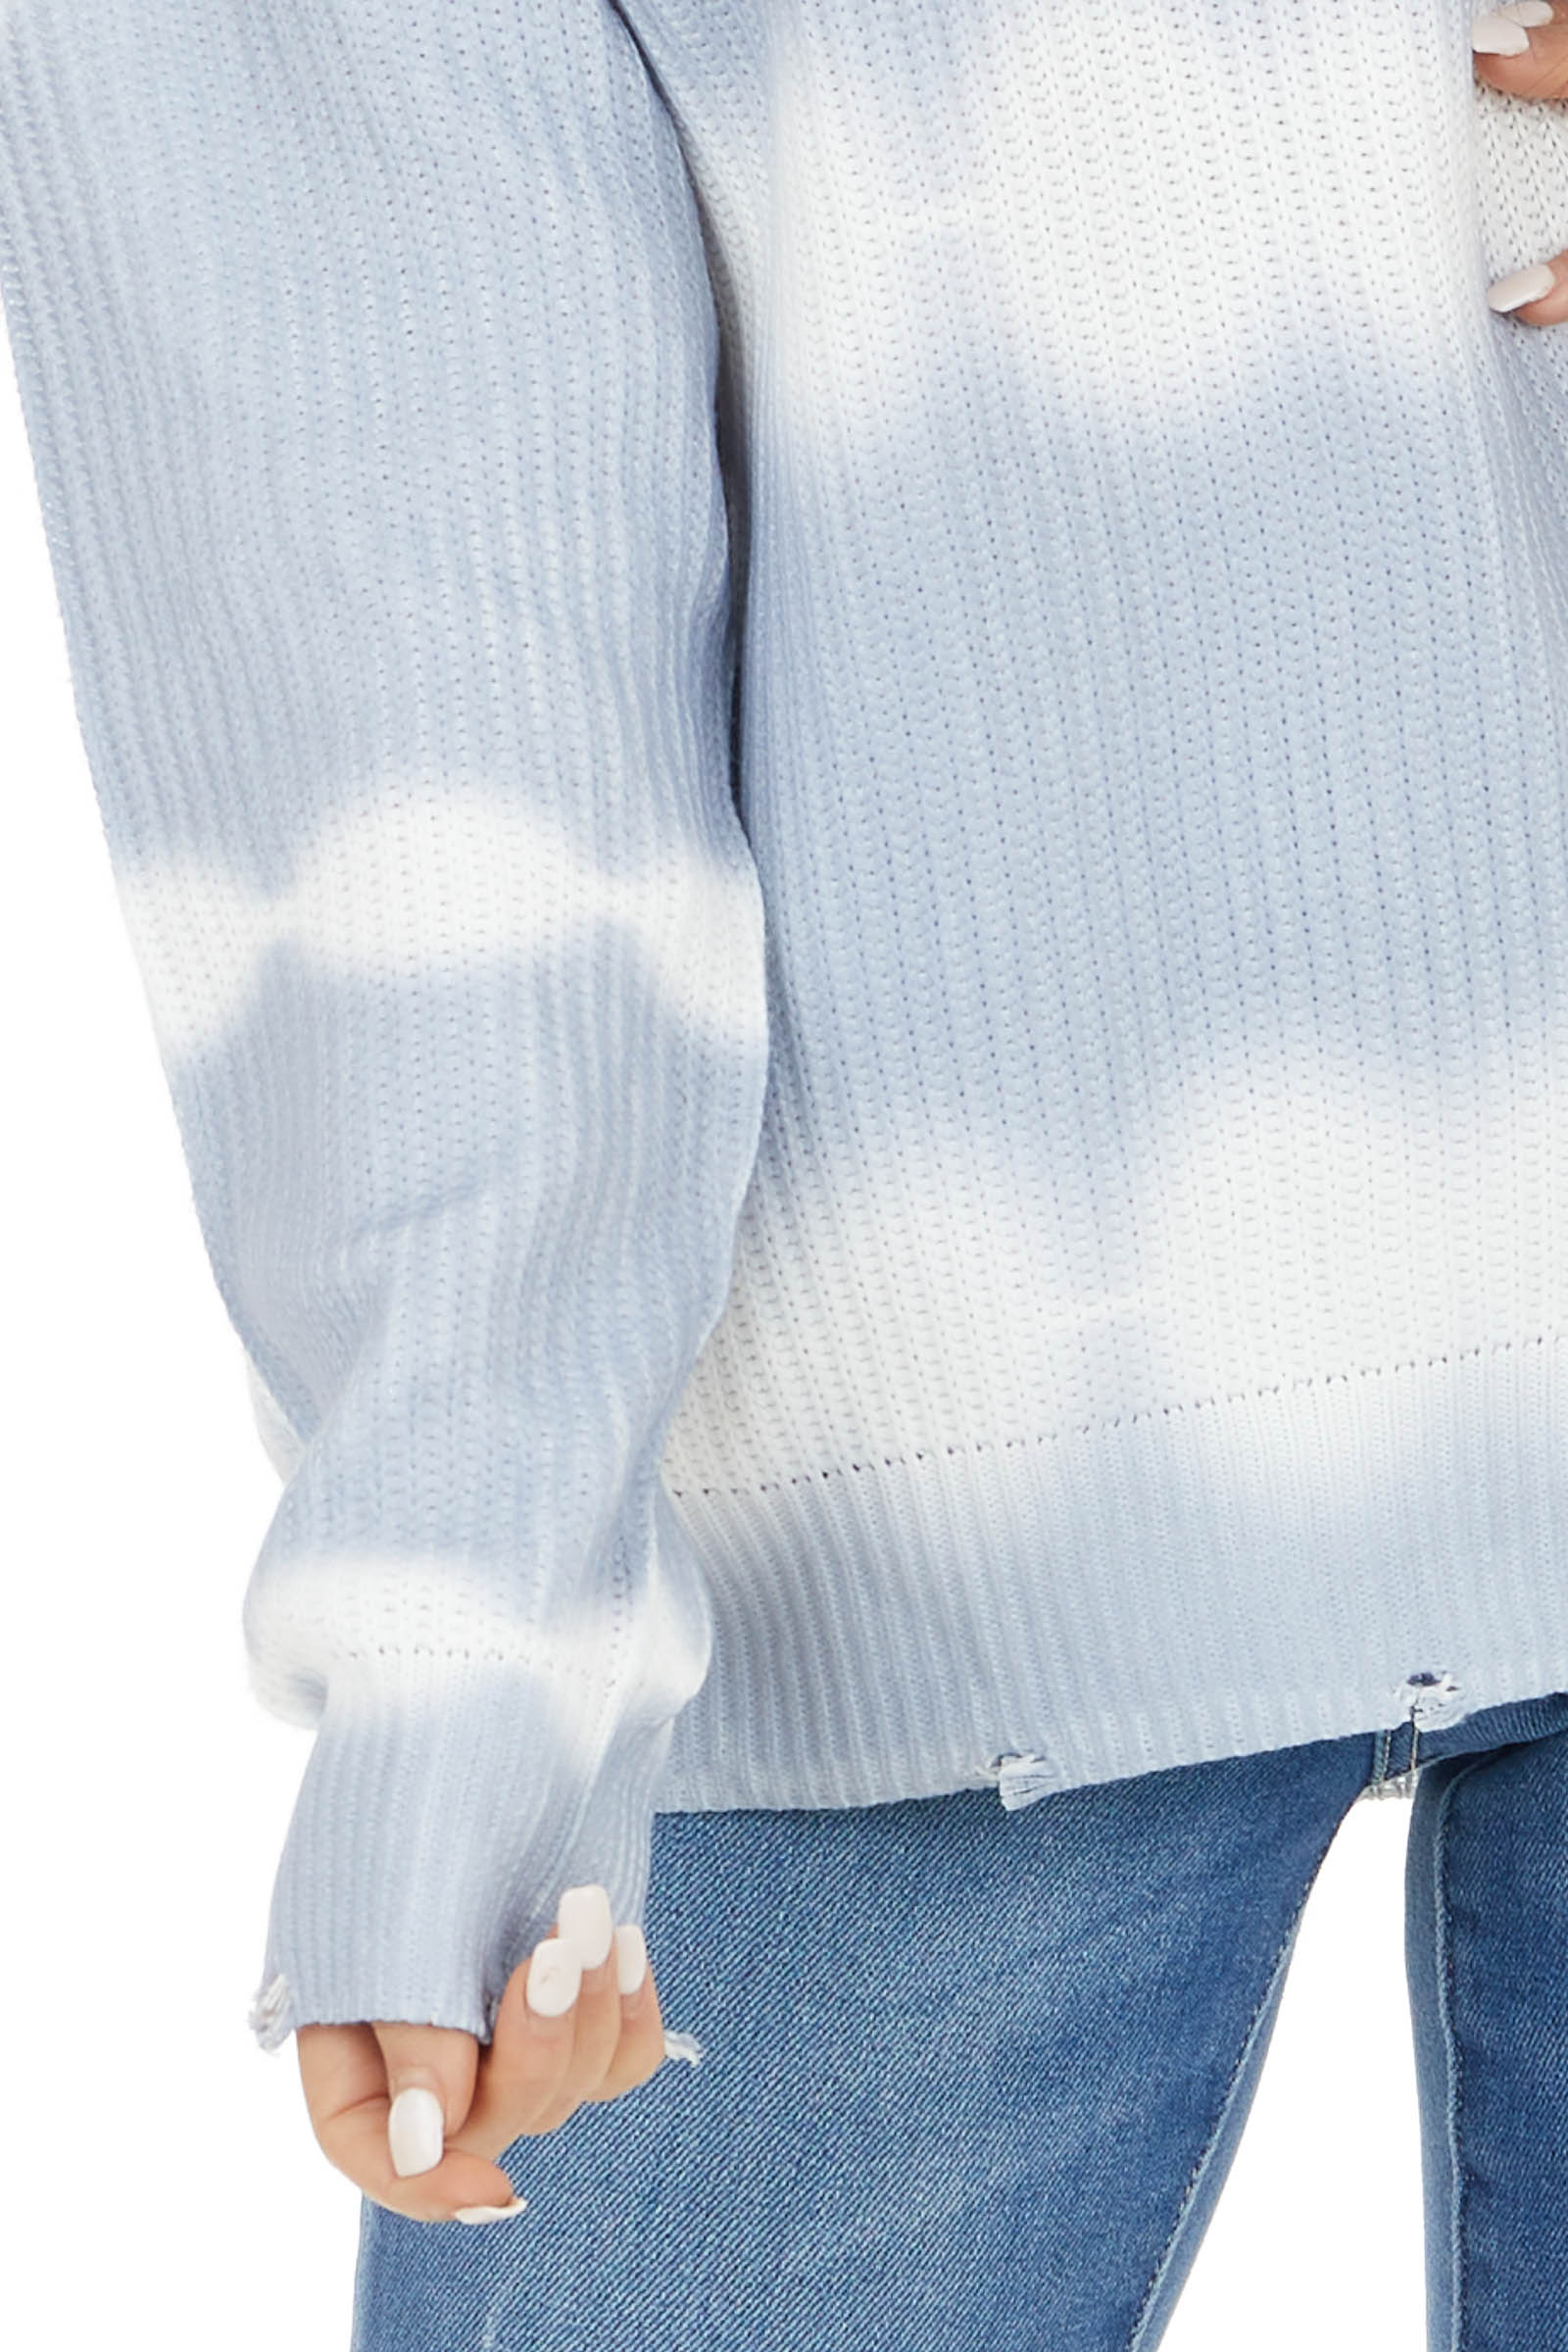 Sky Blue Tie Dye Knit Sweater with Distressed Detail